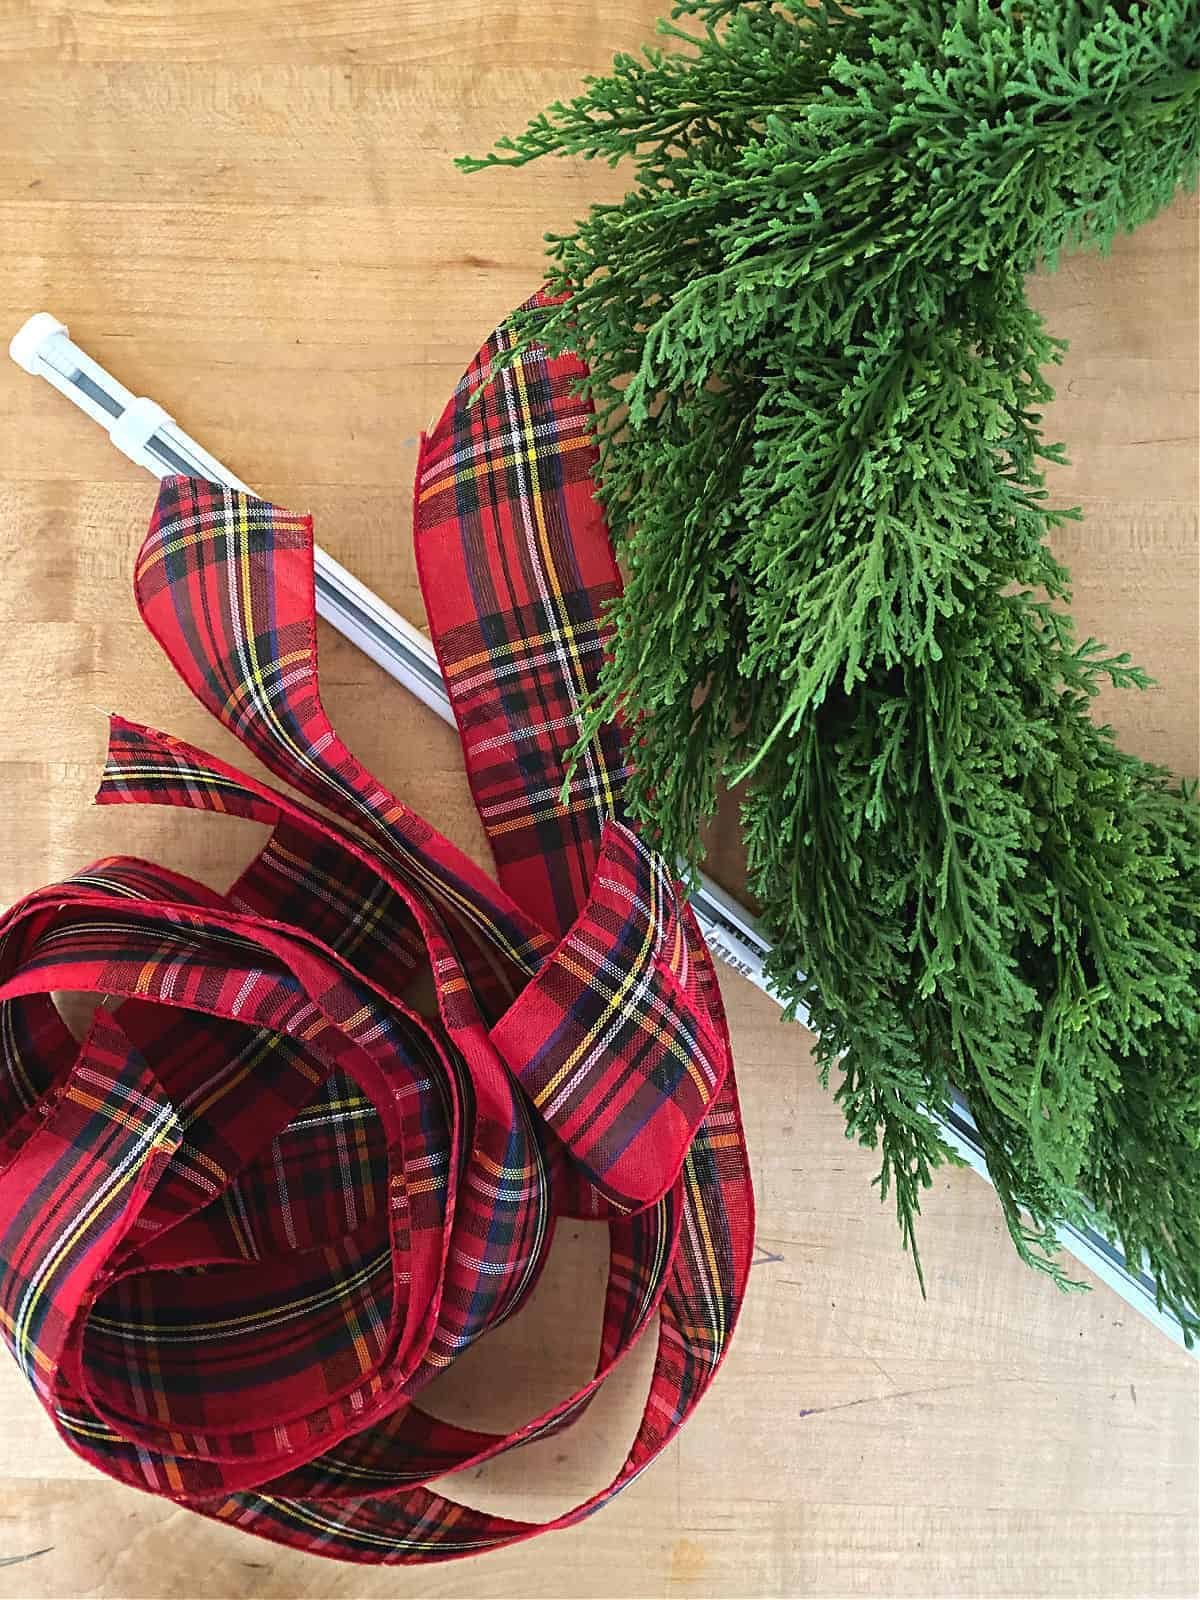 wreath, ribbon and tension rod on a butcher block